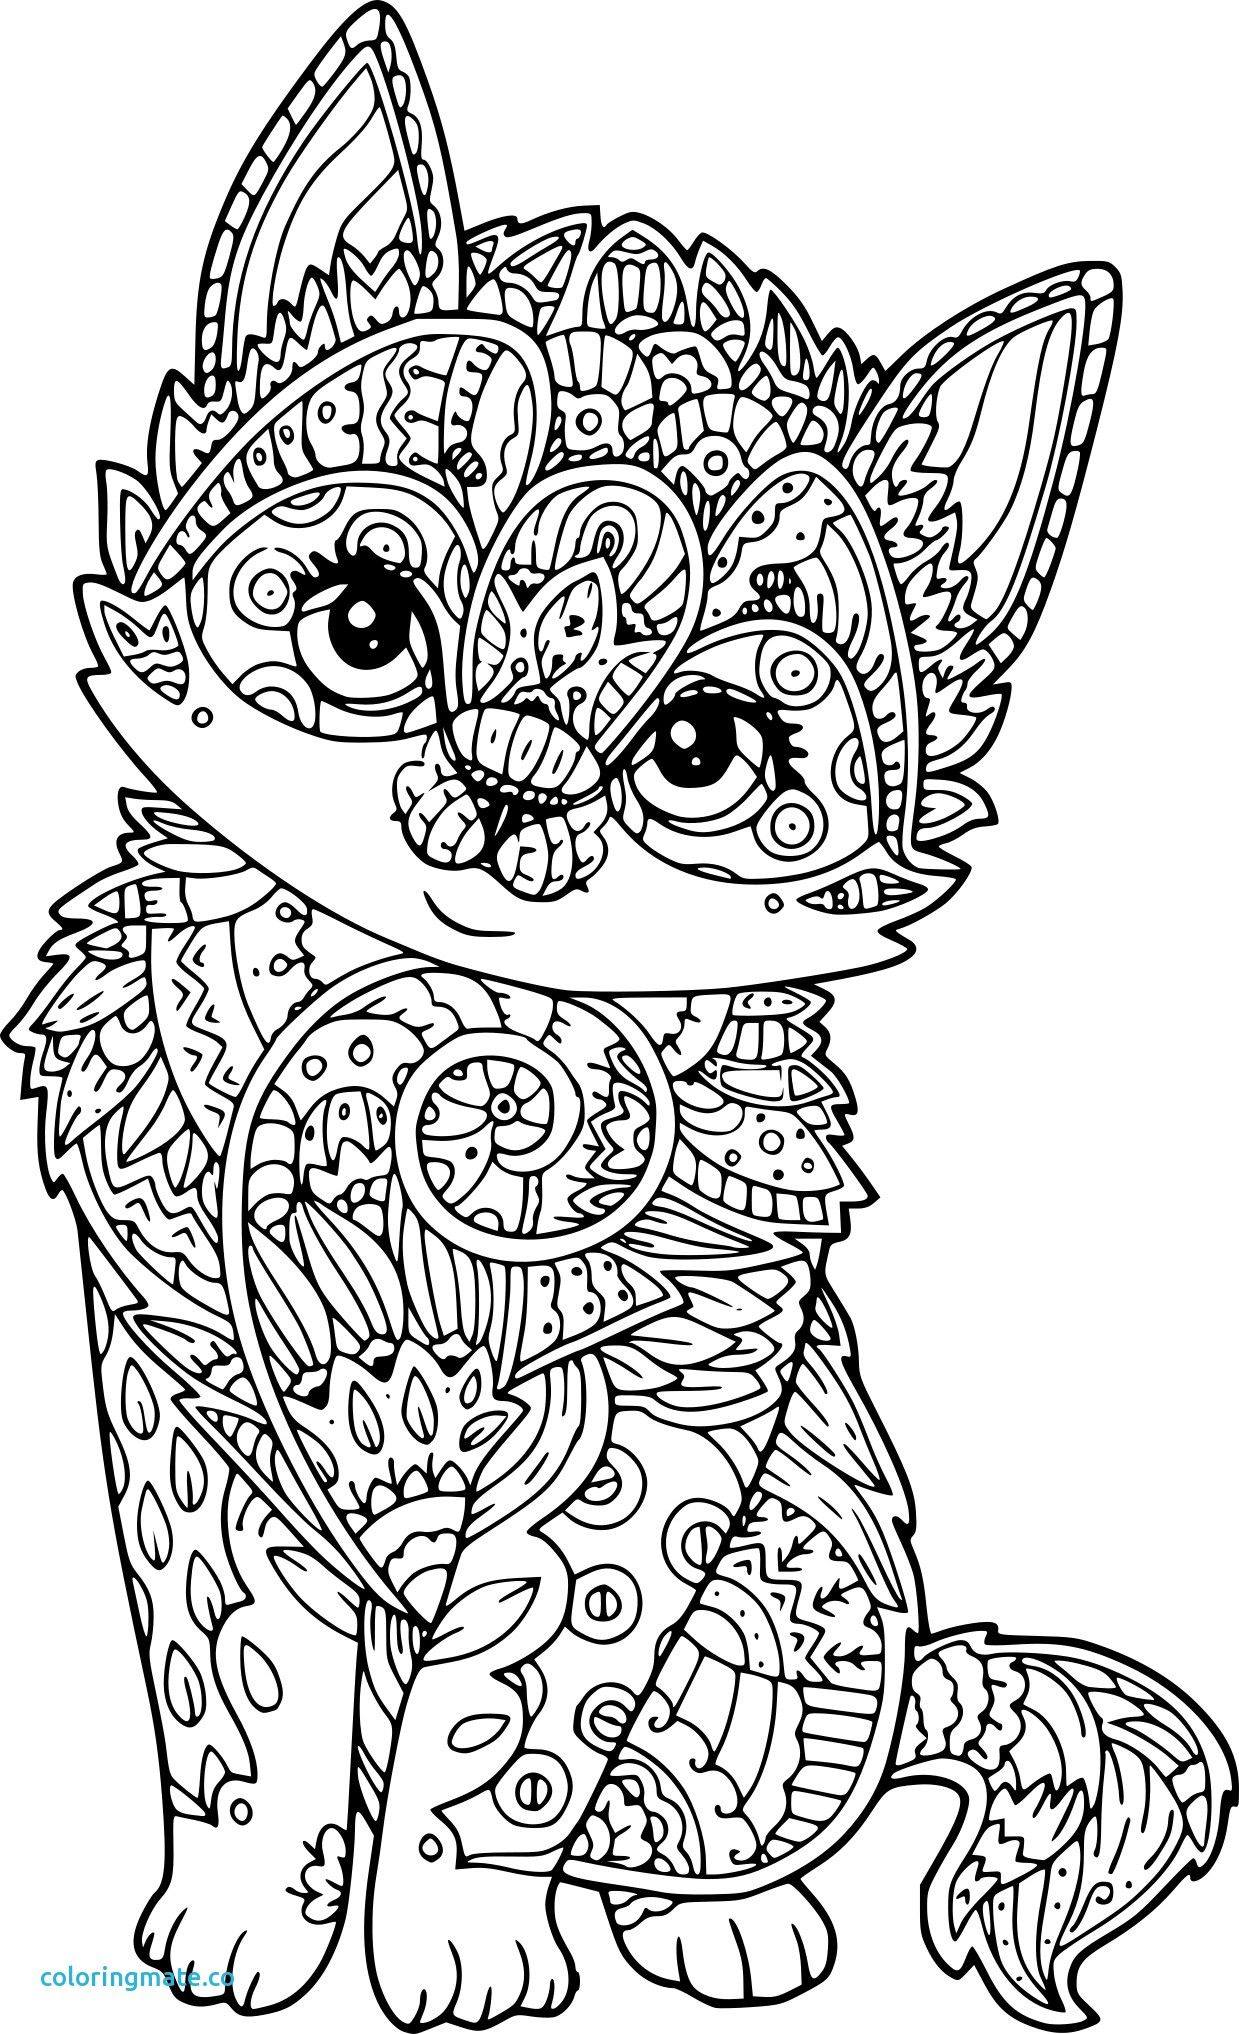 Coloriage mandala chat papillon fresh coloriage chat - Dessin animaux ...